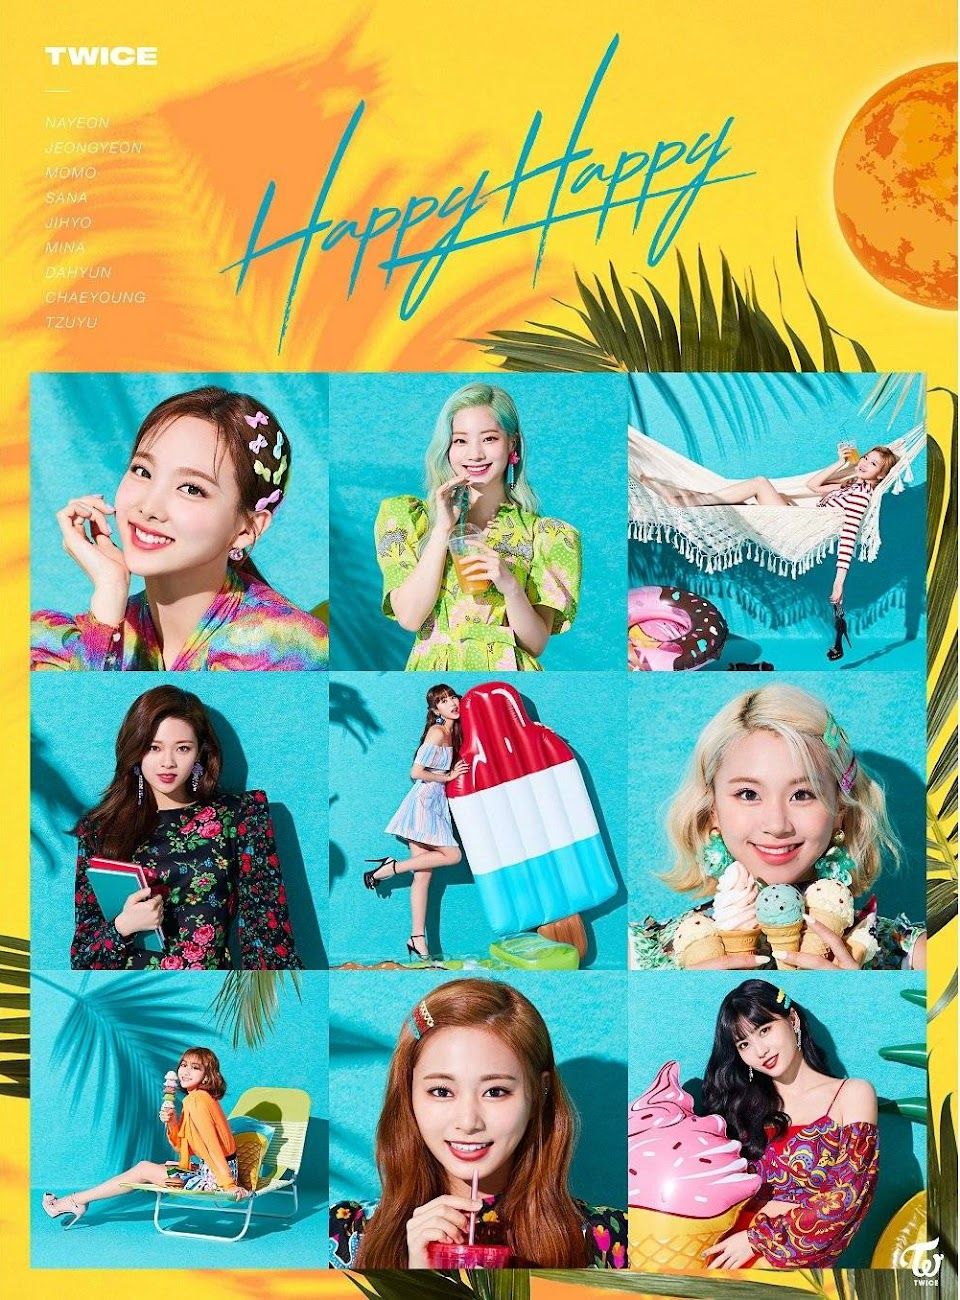 twice_happyhappy_3